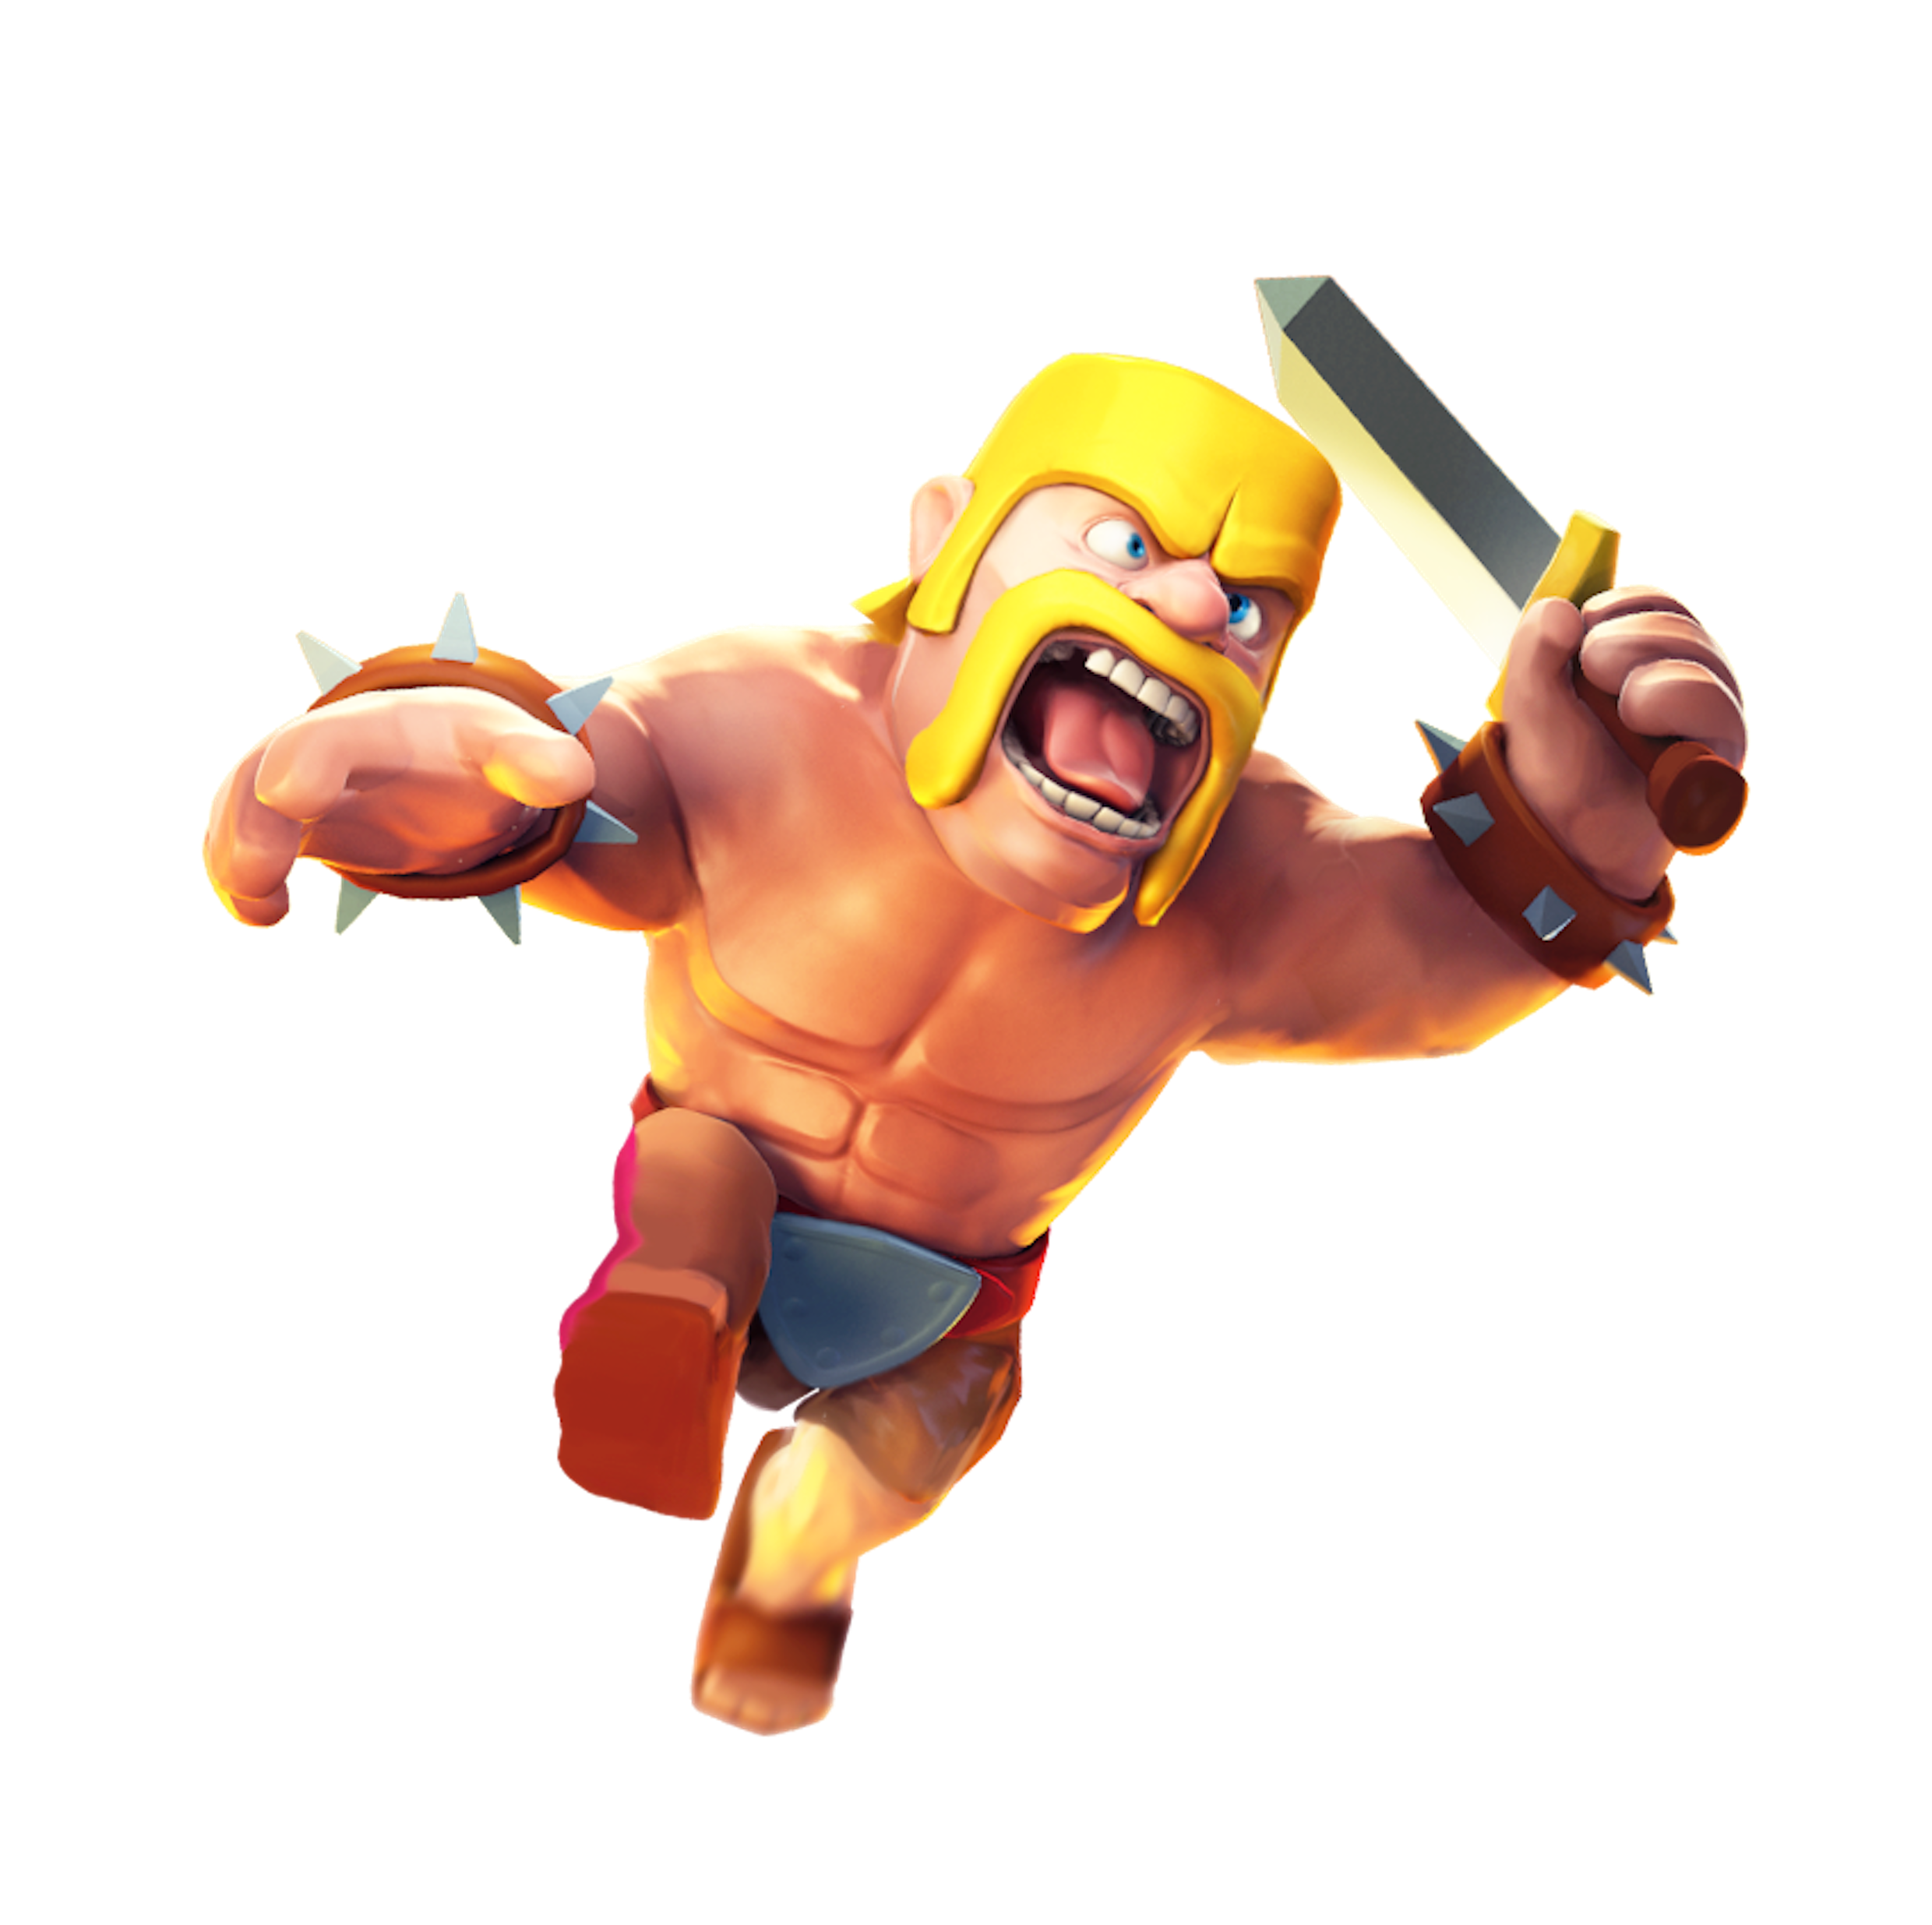 Clash_of_Clans_Barbarian.png